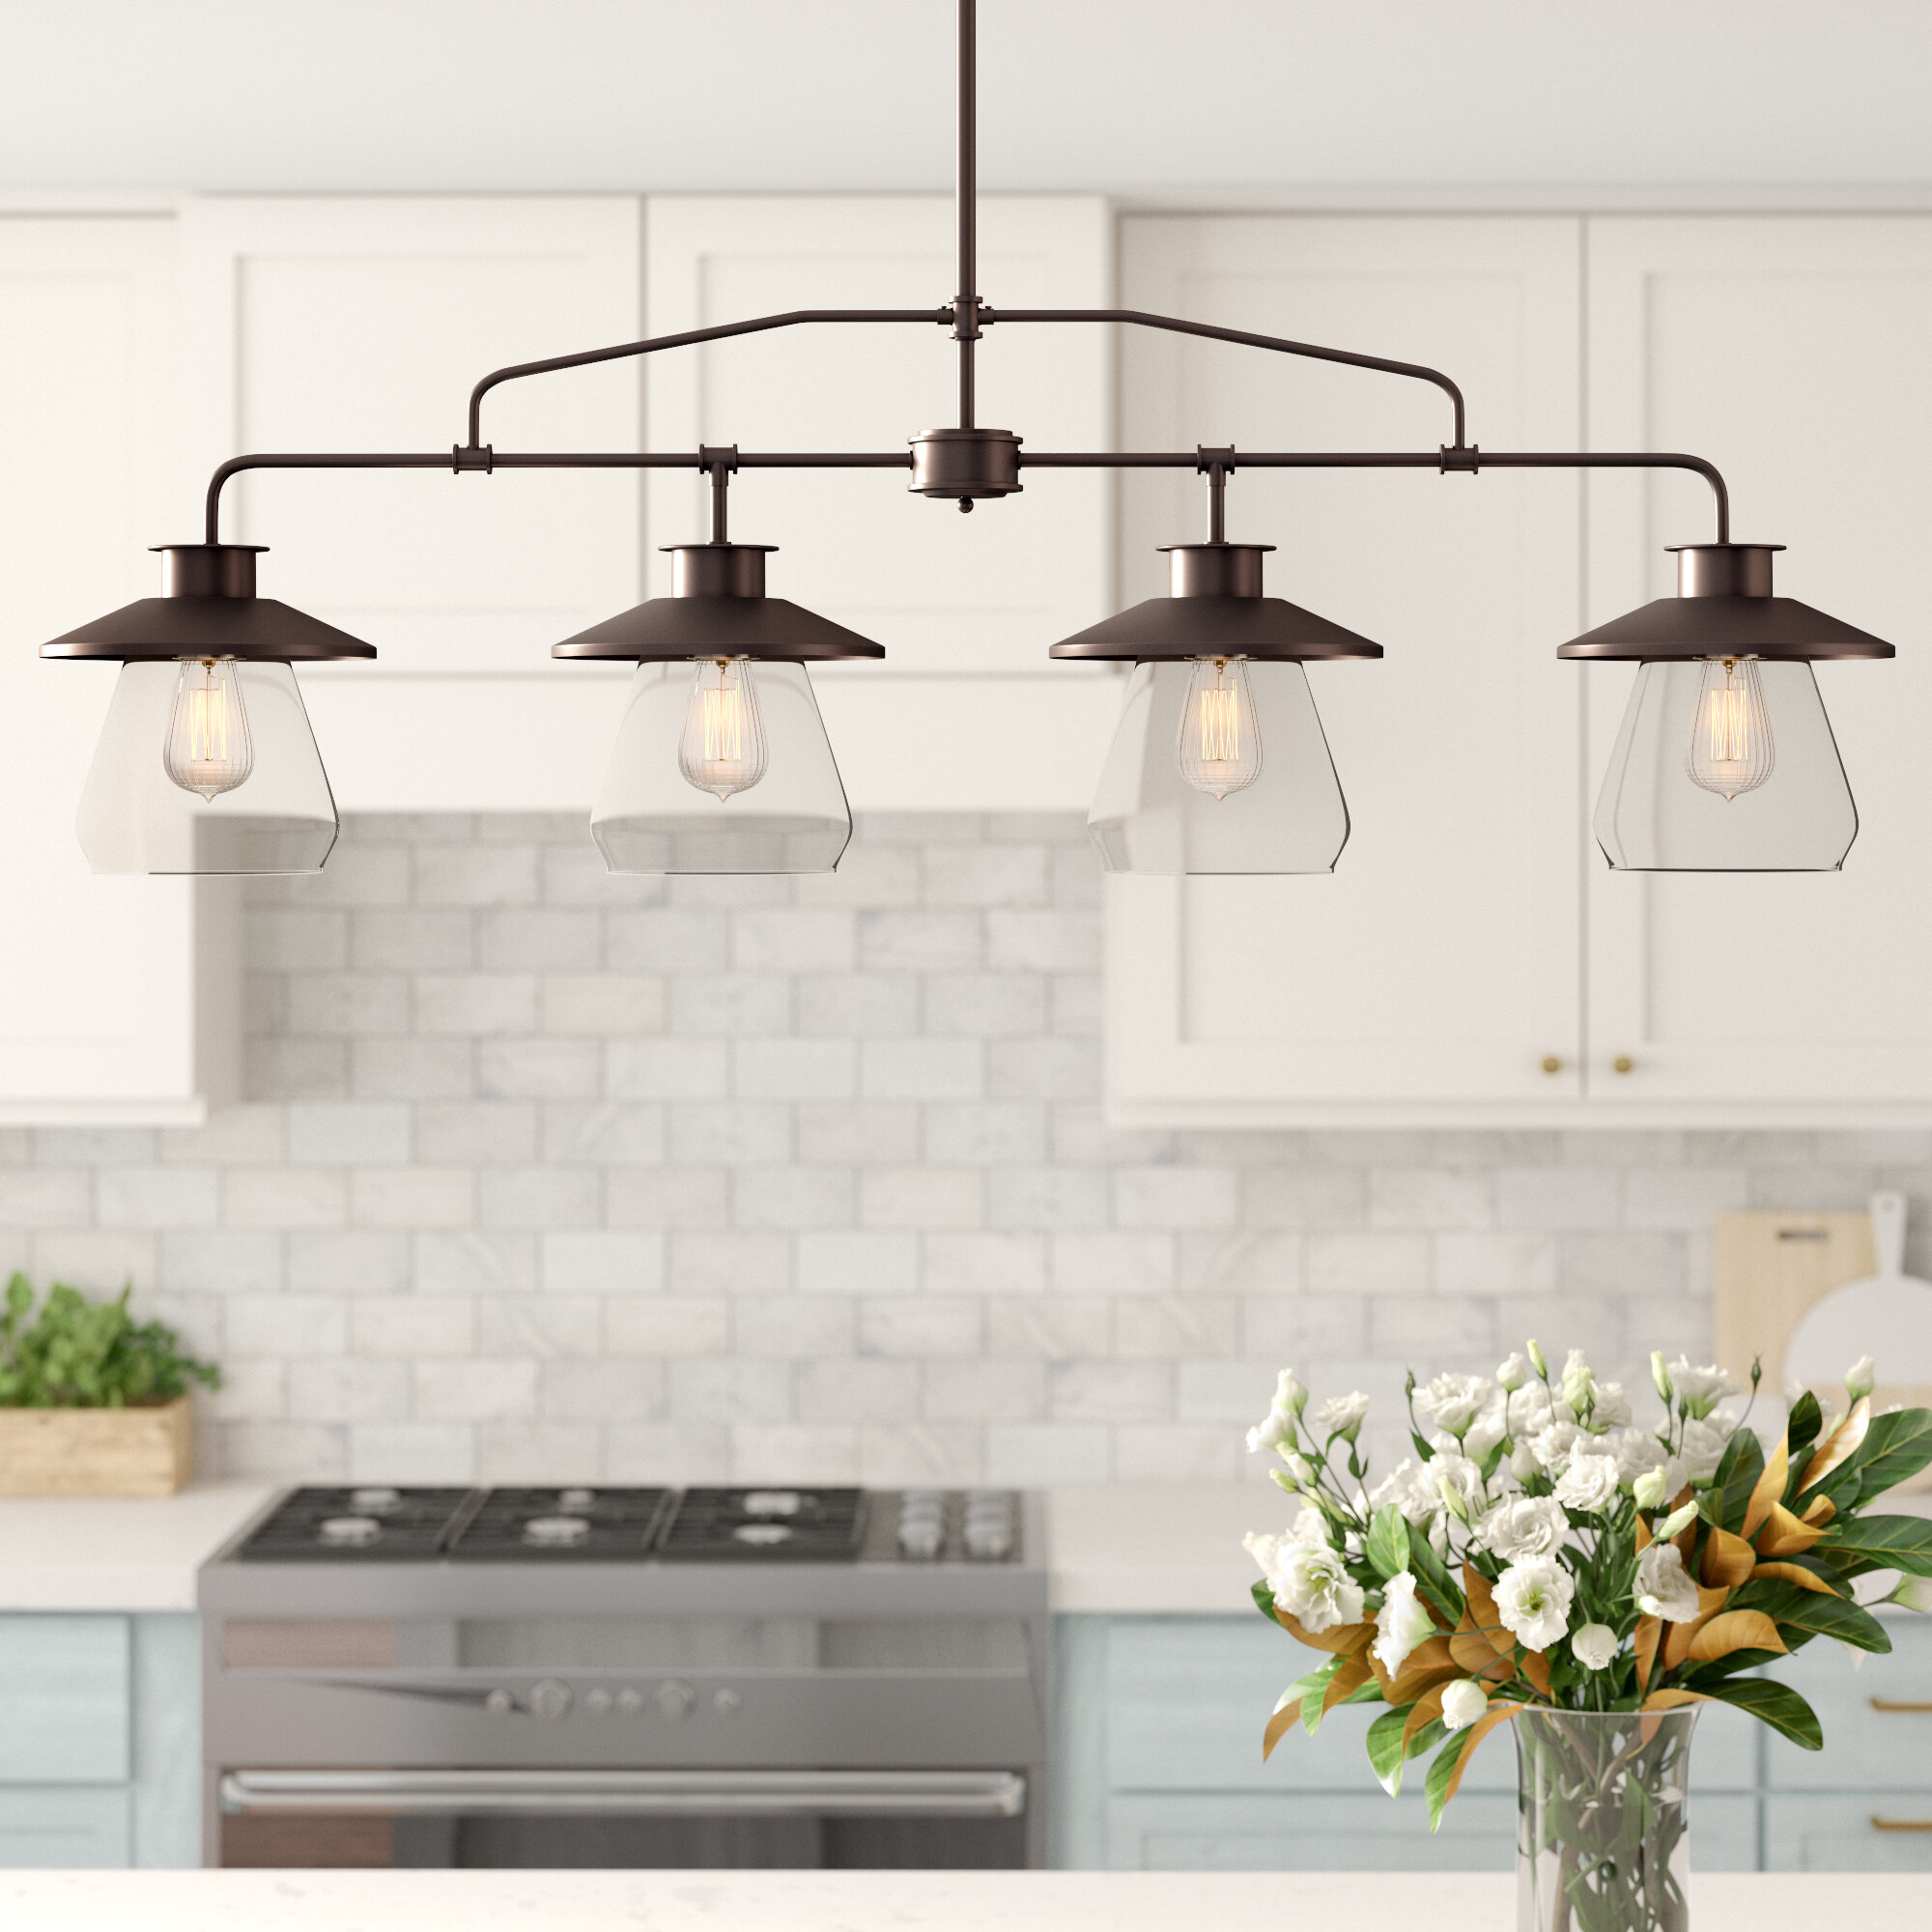 Ledbury 4 Light Kitchen Island Pendant